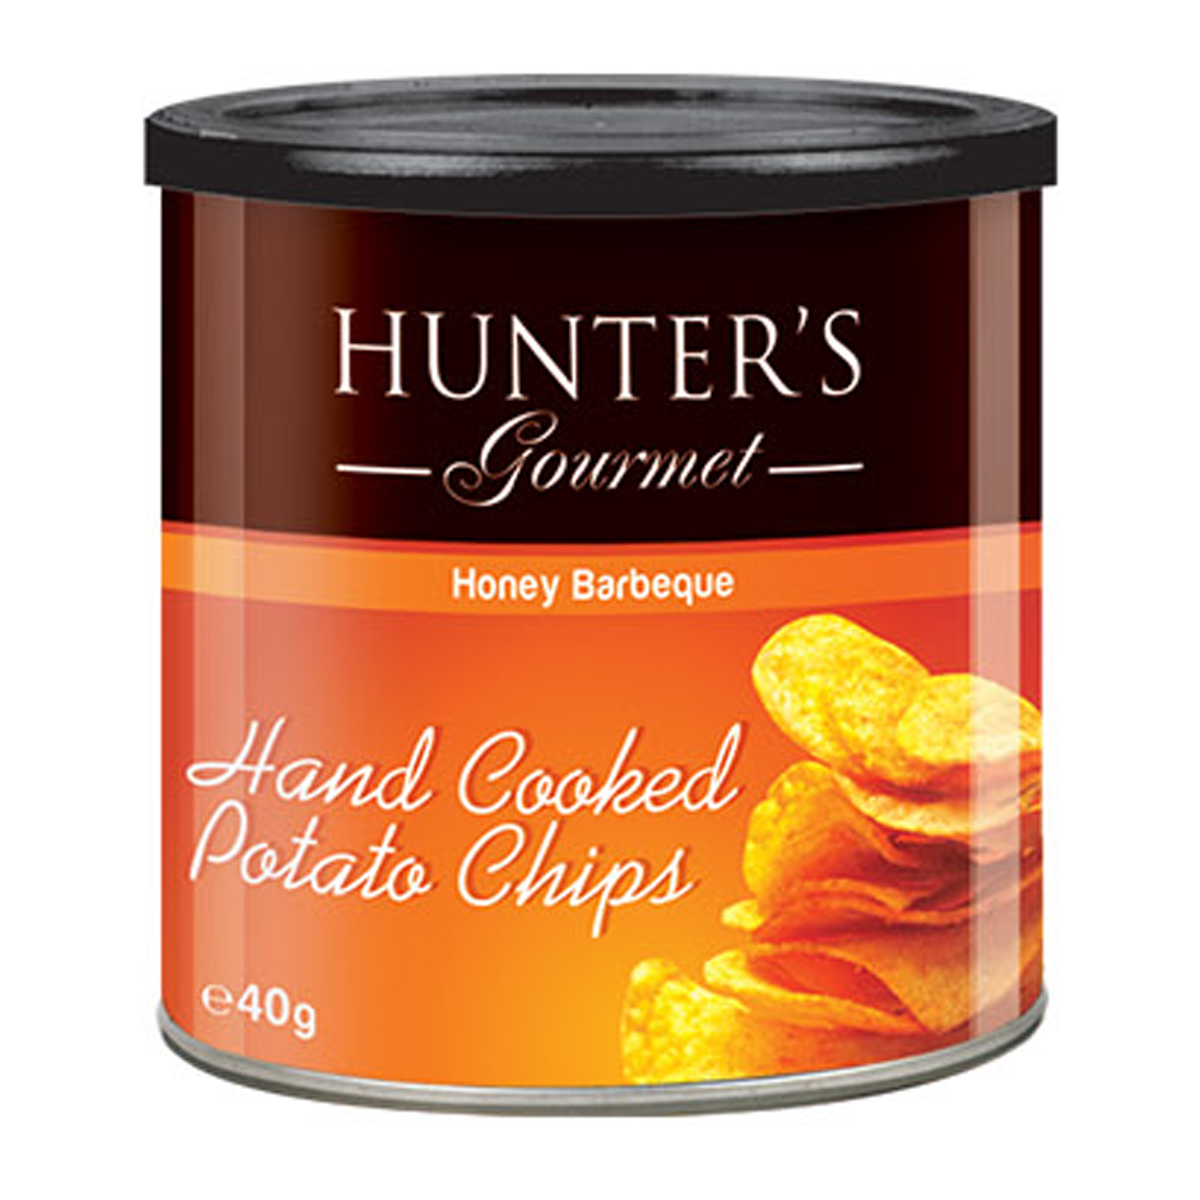 Hunter's Gourmet Hand Cooked Potato Chips  – Yoghurt with Natural Herbs (40gm)